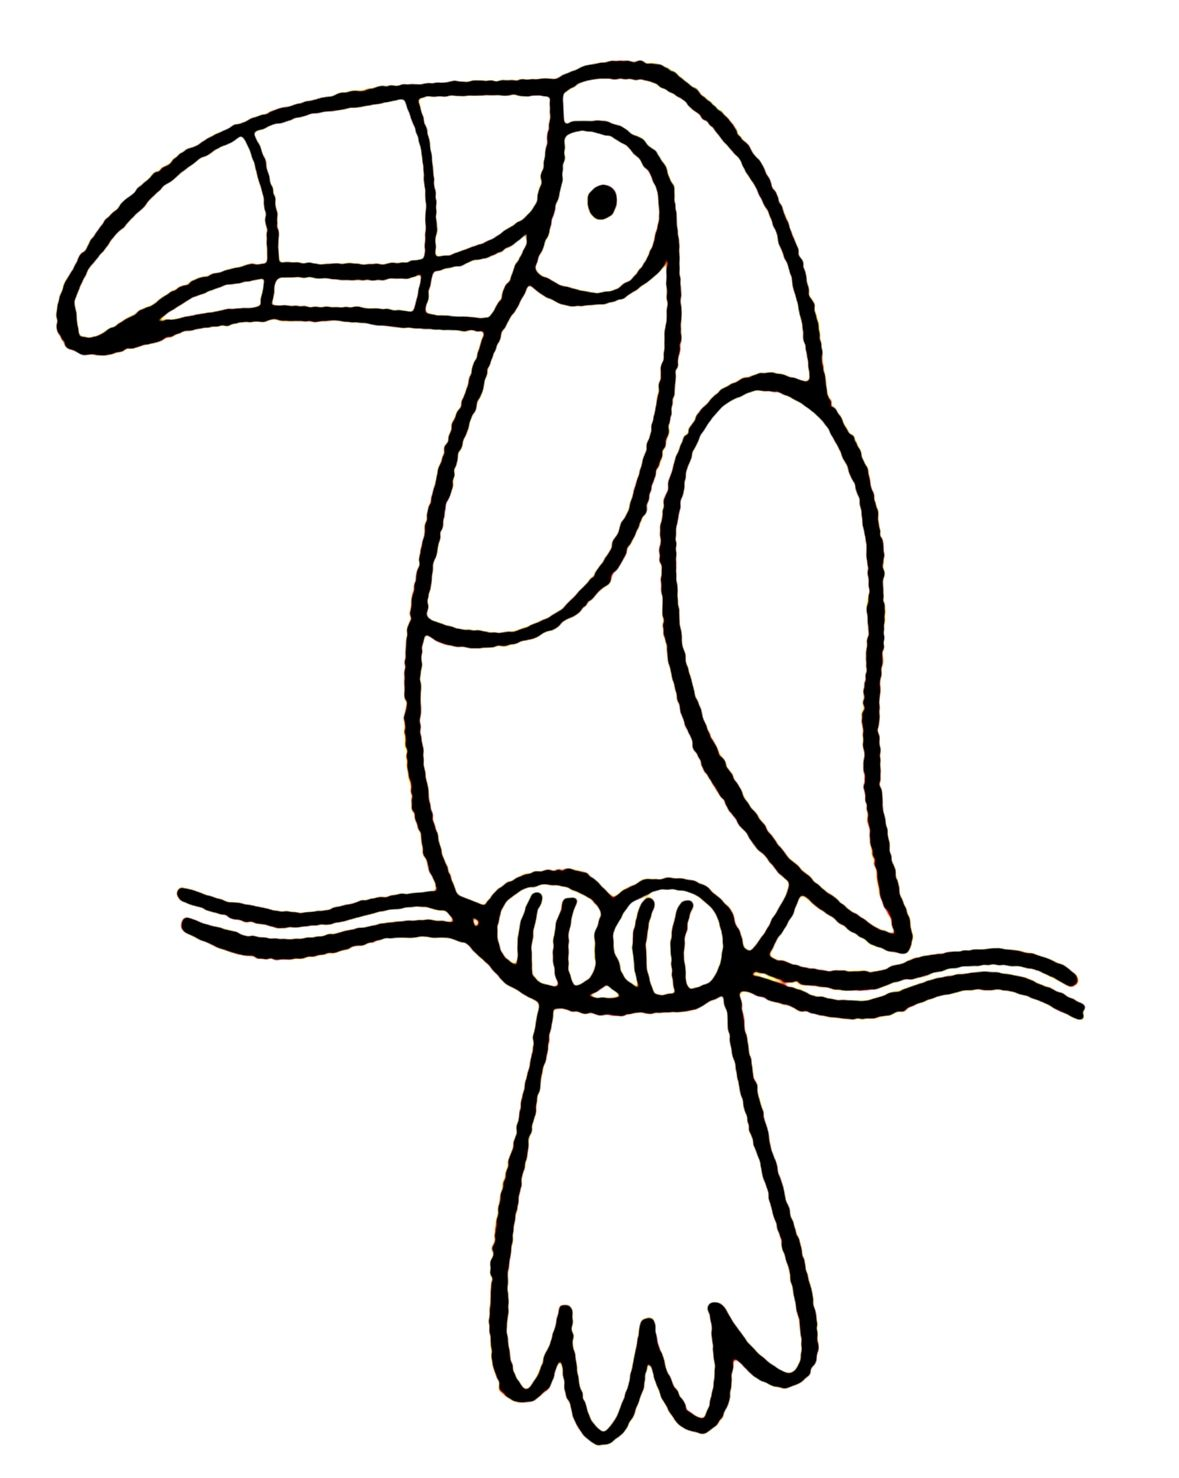 toucan coloring pages toucan coloring page   Google Search | 1st grade | Pinterest  toucan coloring pages